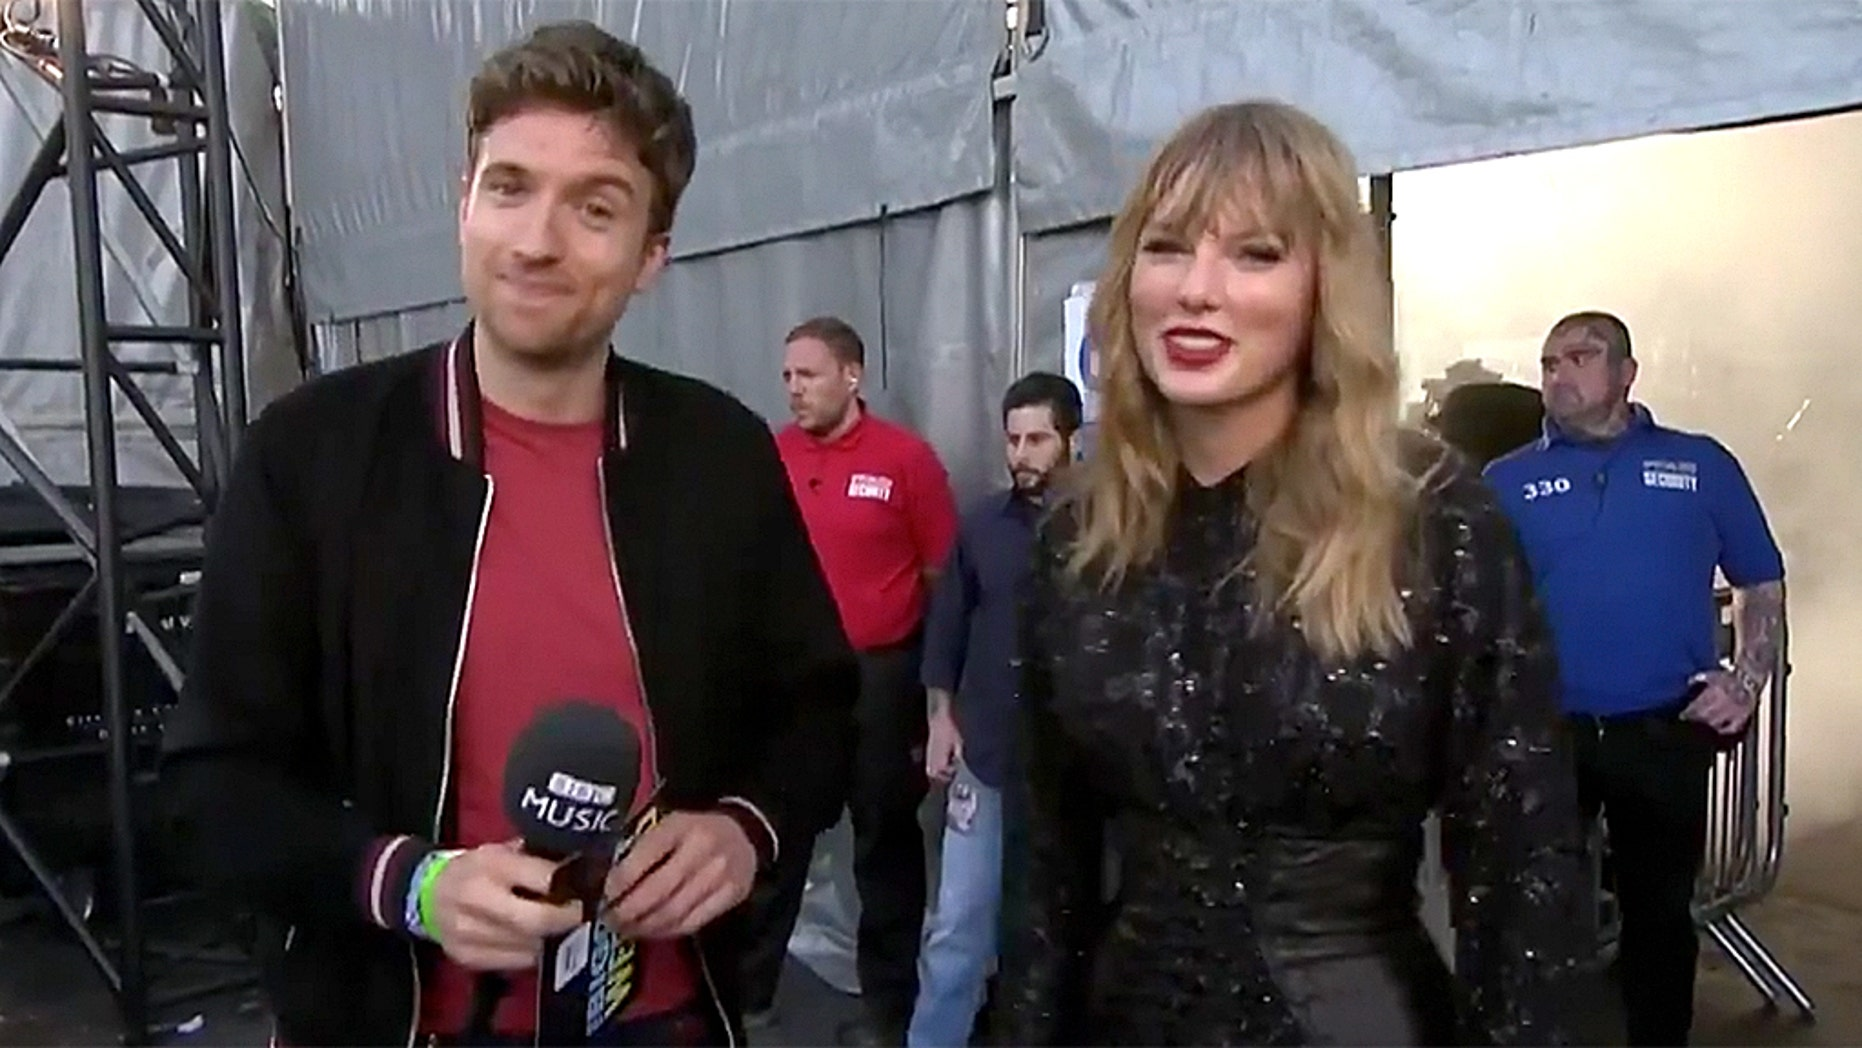 BBC Radio 1 DJ Greg James was called out by Taylor Swift fans after he mentioned that the singer should take a shower following her performance.